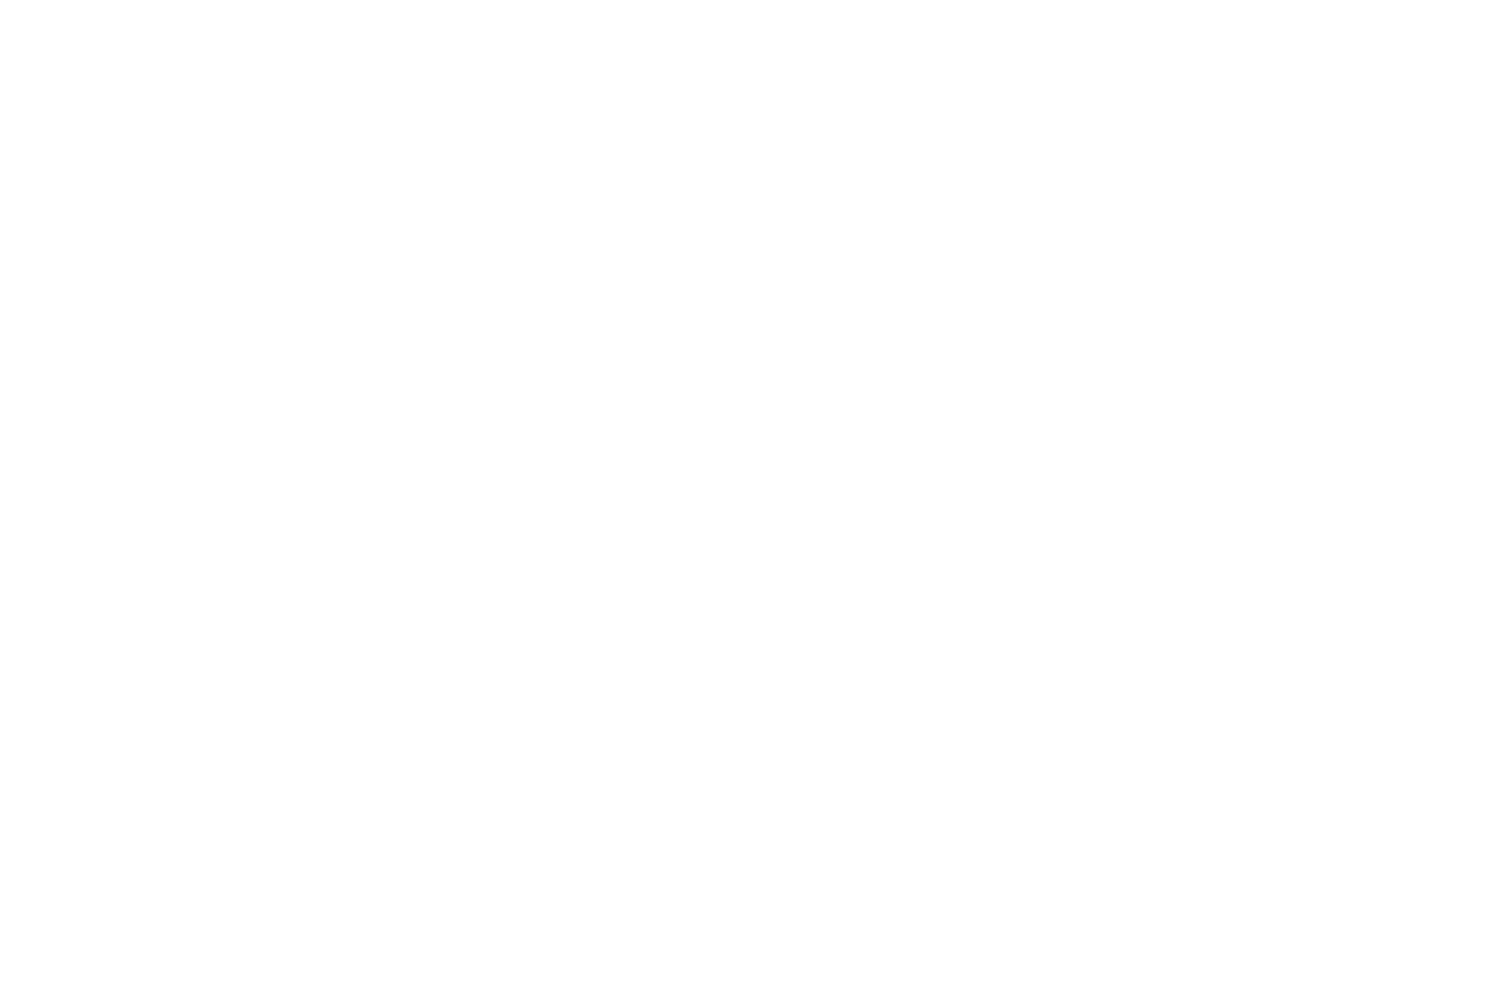 Cognoscenti Creative